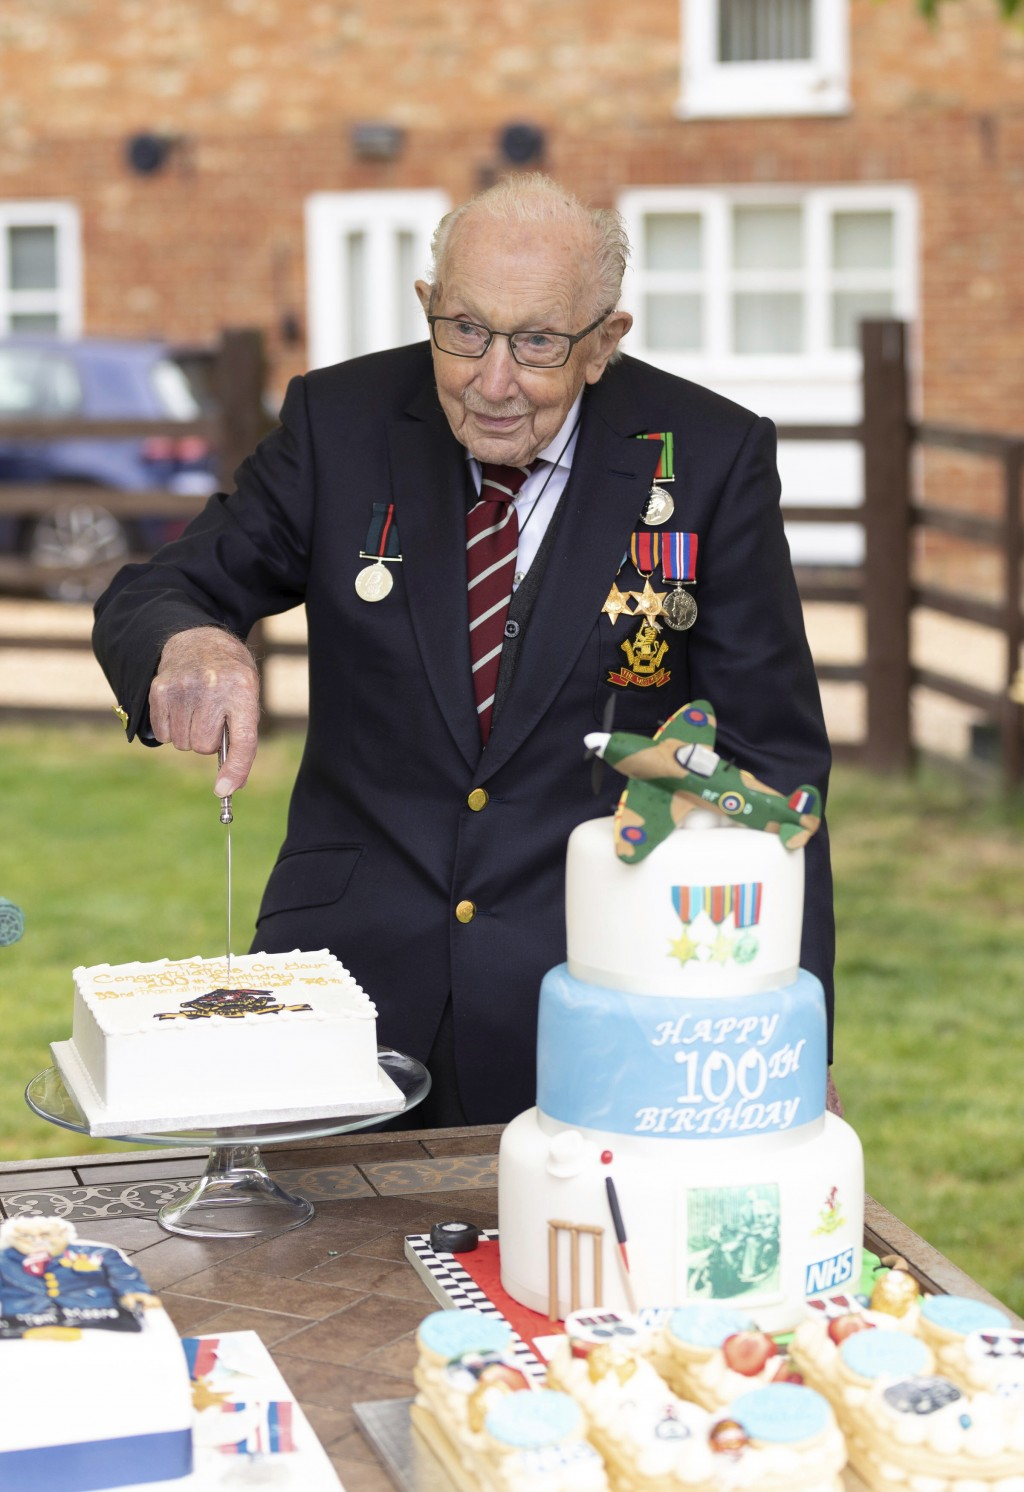 In this photo provided by Capture the Light Photography,  Second World War veteran Captain Tom Moore cuts into one of his birthday cakes as he celebra...